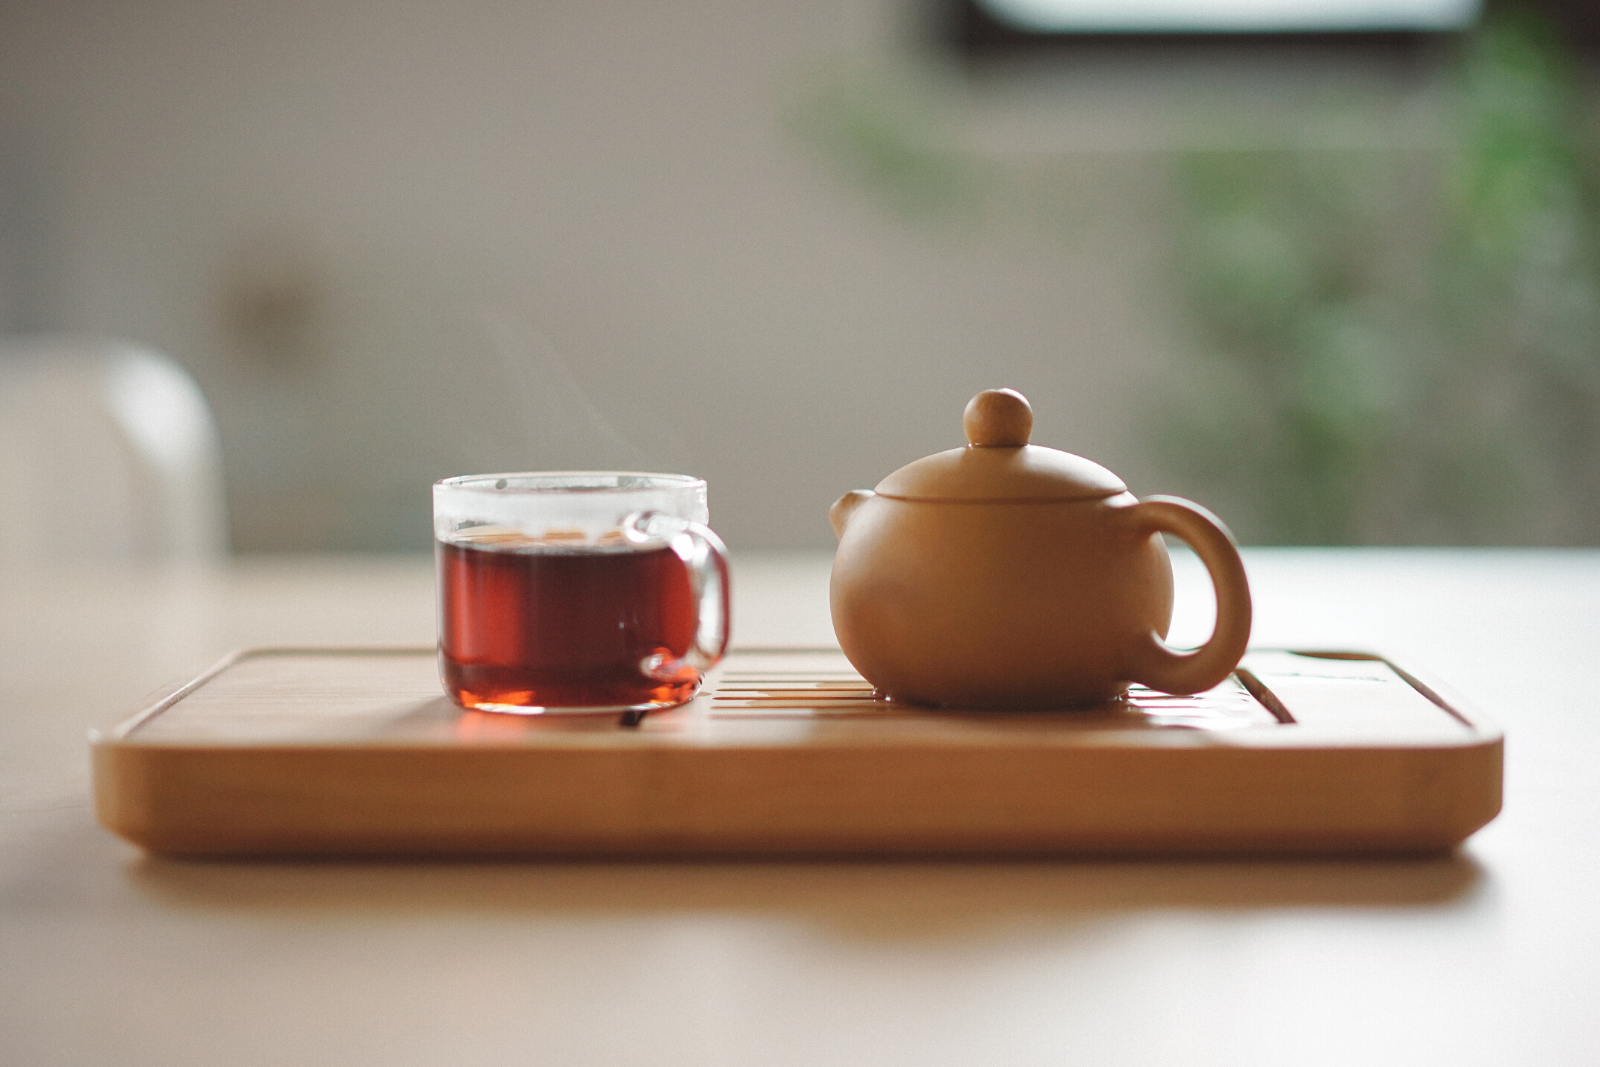 Tea Cup and Tea Pot | Is There A Benefit To Drinking Organic Tea vs. Regular Tea?